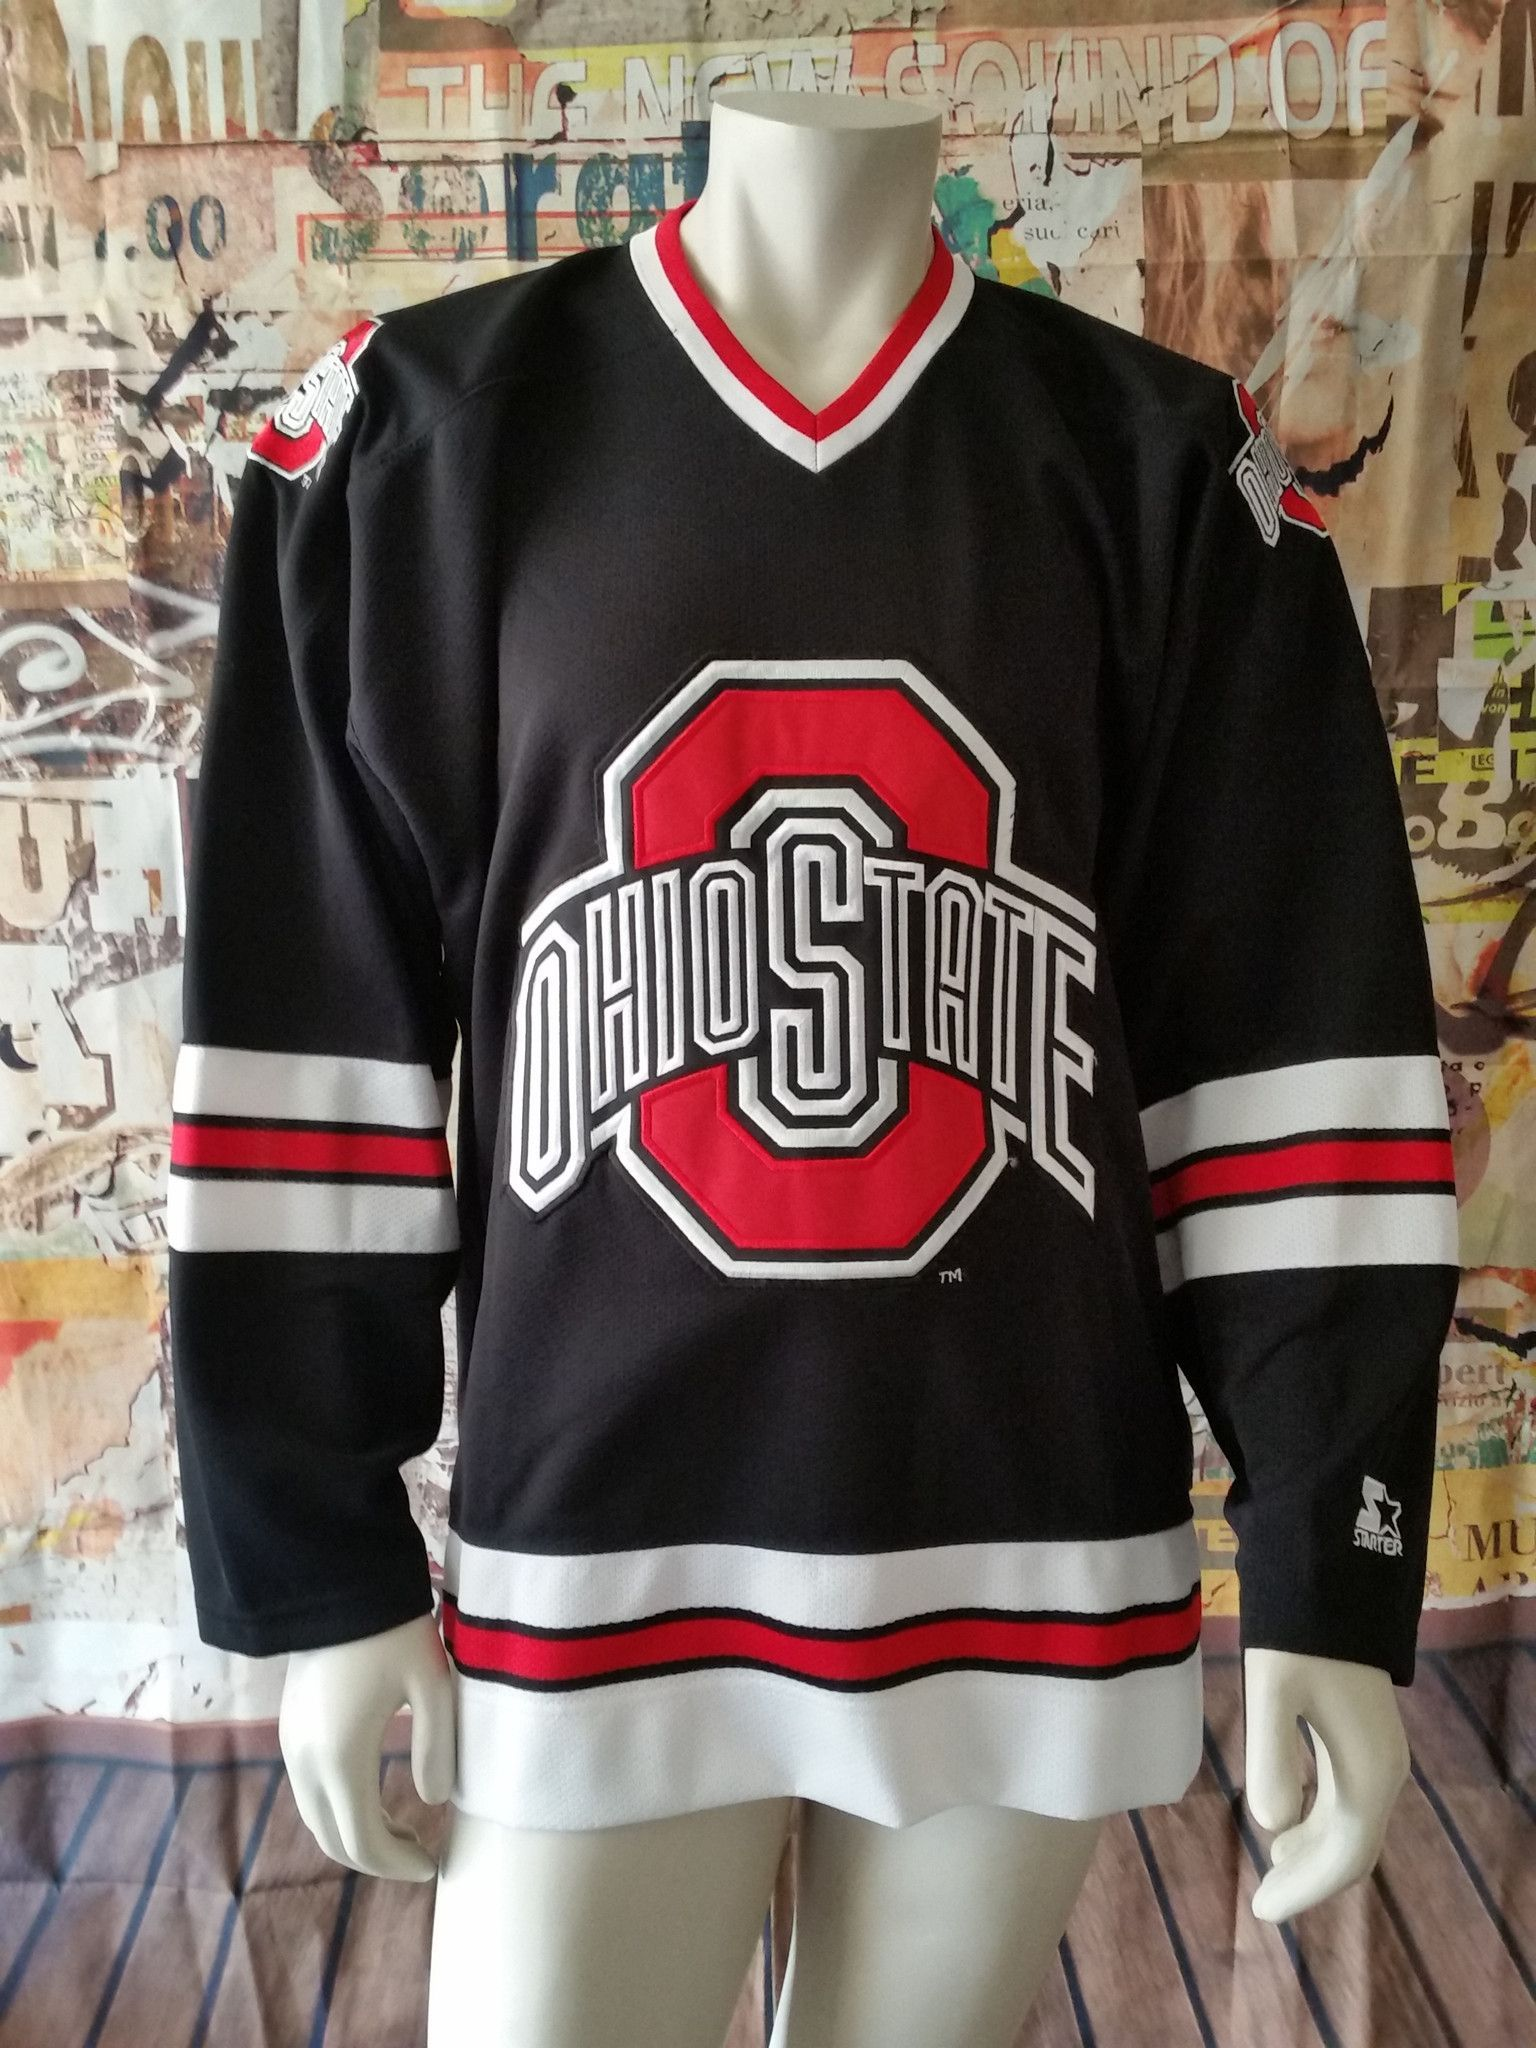 info for 2588b 05a30 Ohio State Buckeyes Vintage Starter Jersey OSU Hockey NCAA ...